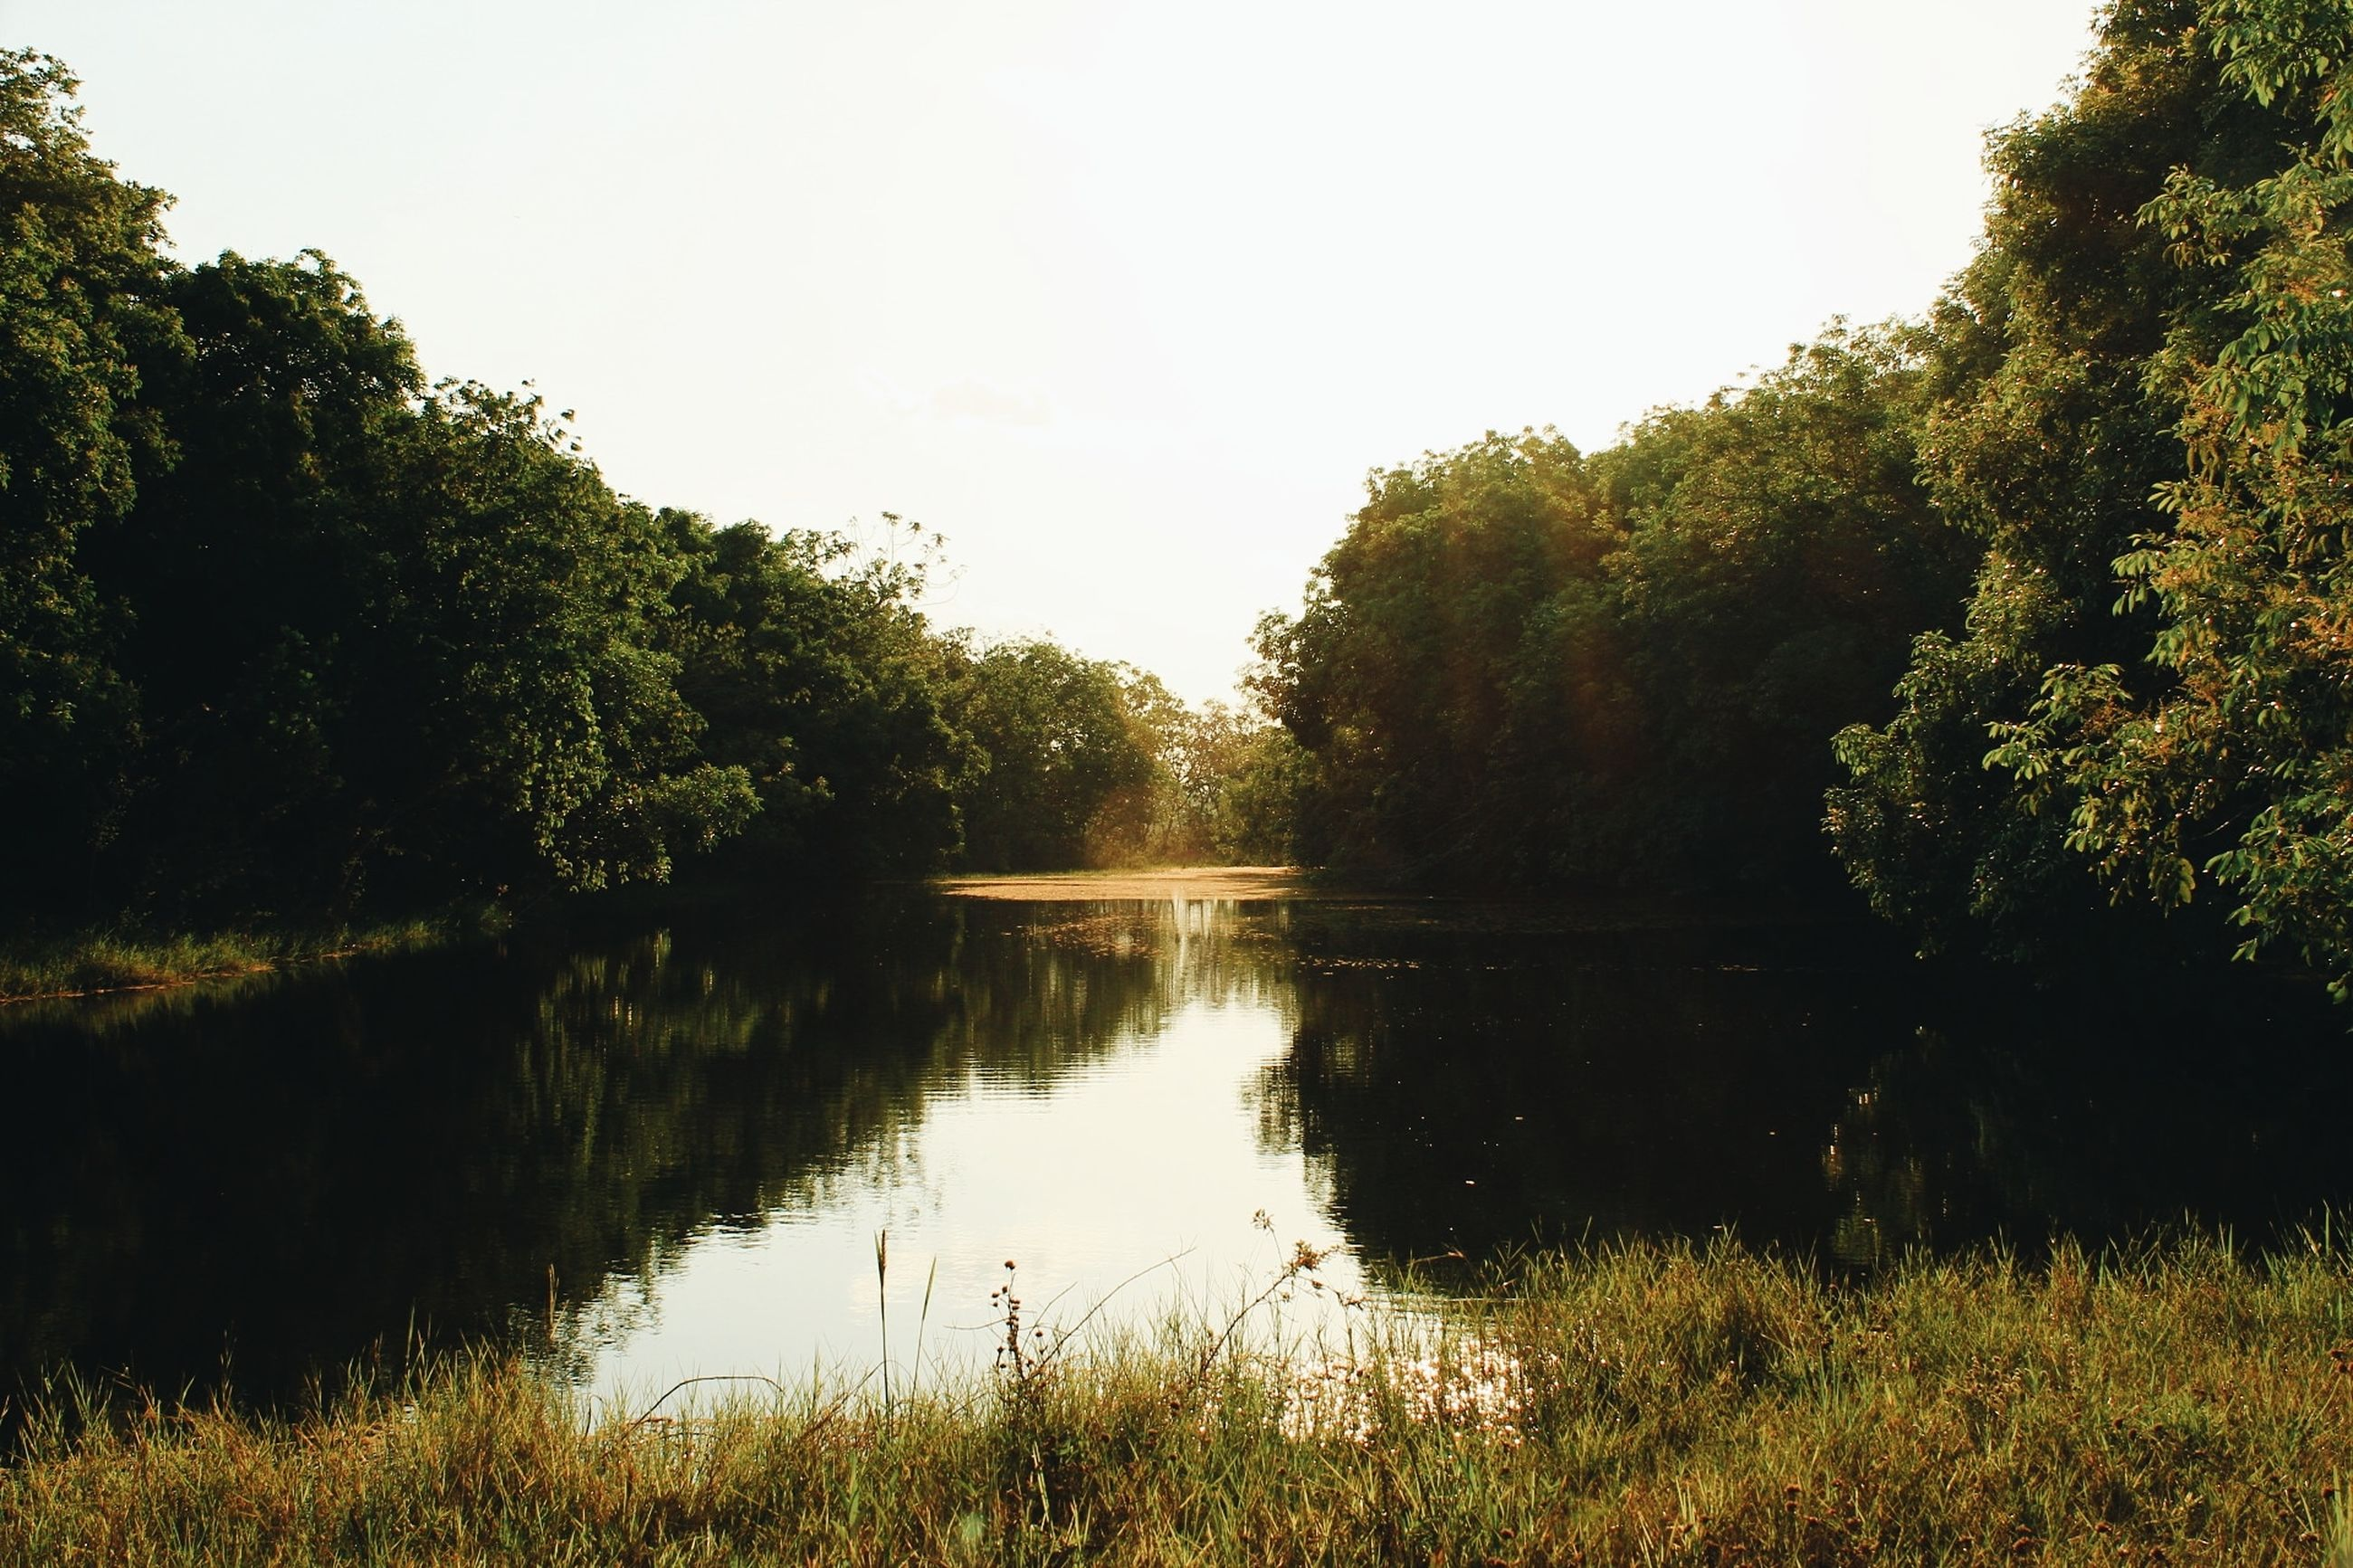 tree, plant, lake, reflection, tranquility, tranquil scene, water, sky, beauty in nature, nature, scenics - nature, grass, growth, no people, green color, day, clear sky, idyllic, outdoors